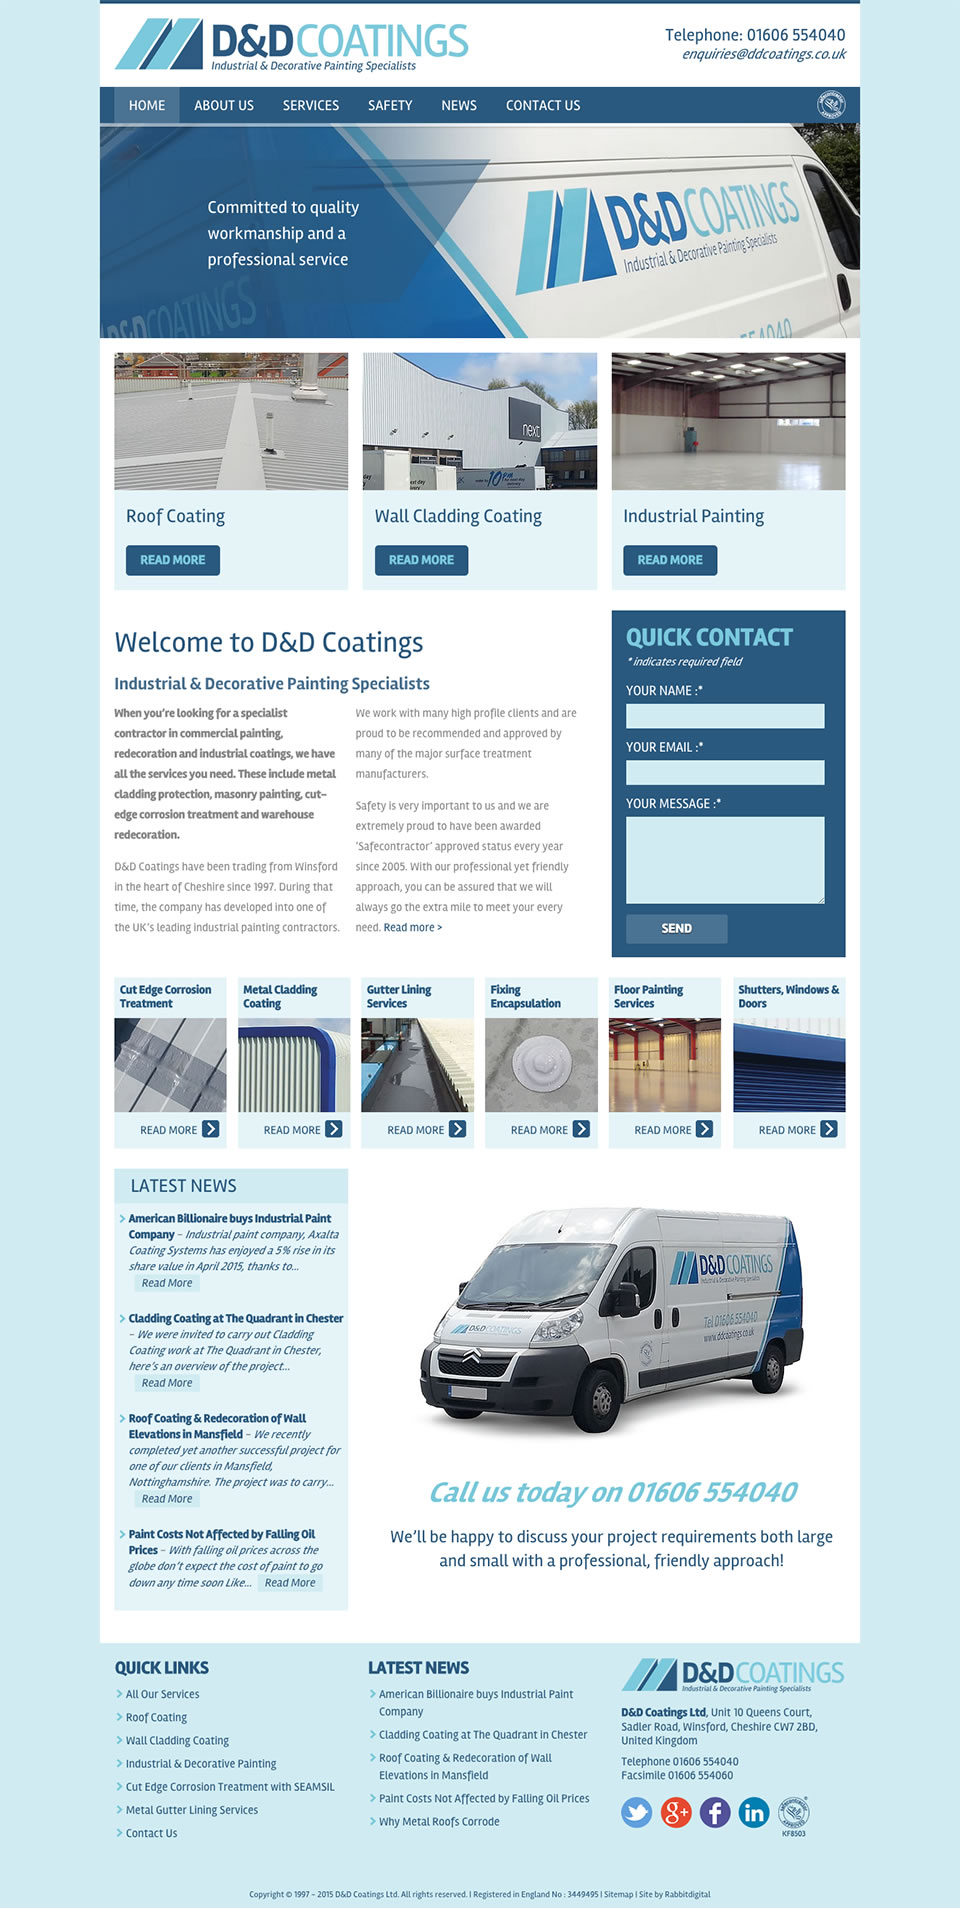 ddcoatings current website home page